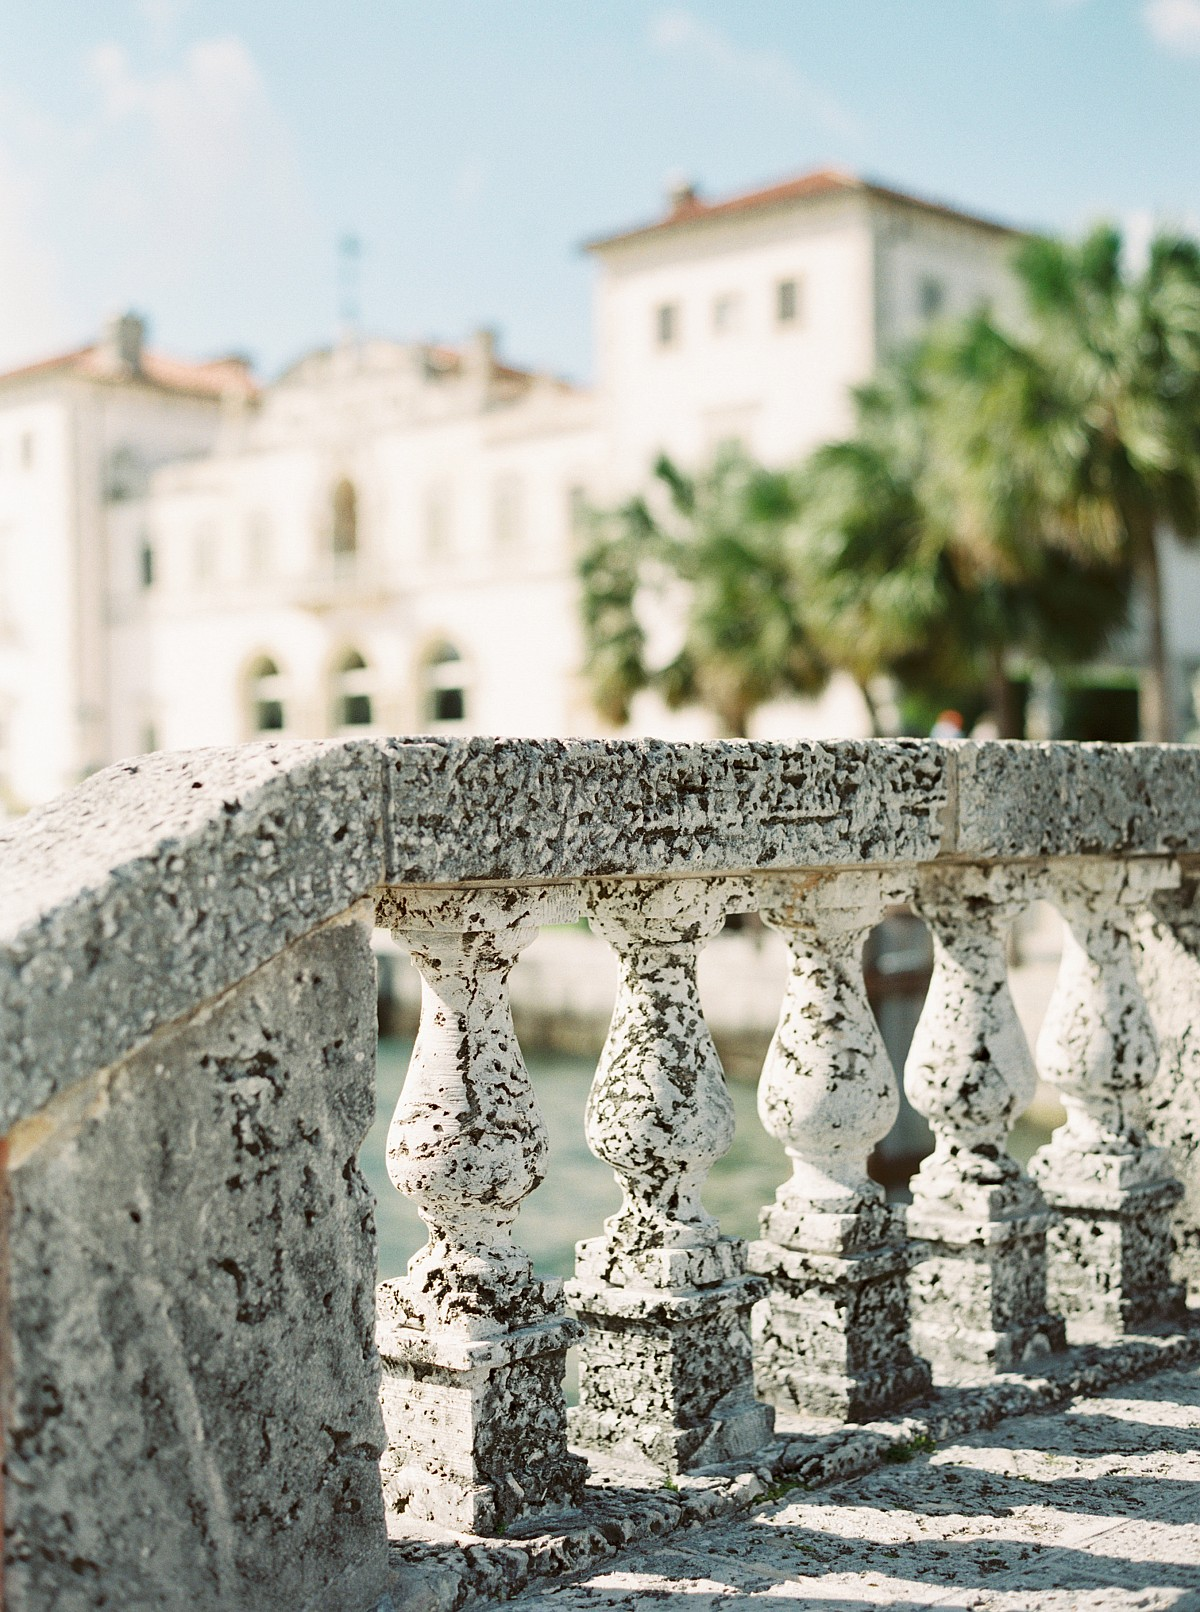 Vizcaya: A 1900s Estate in the Miami Subtropics